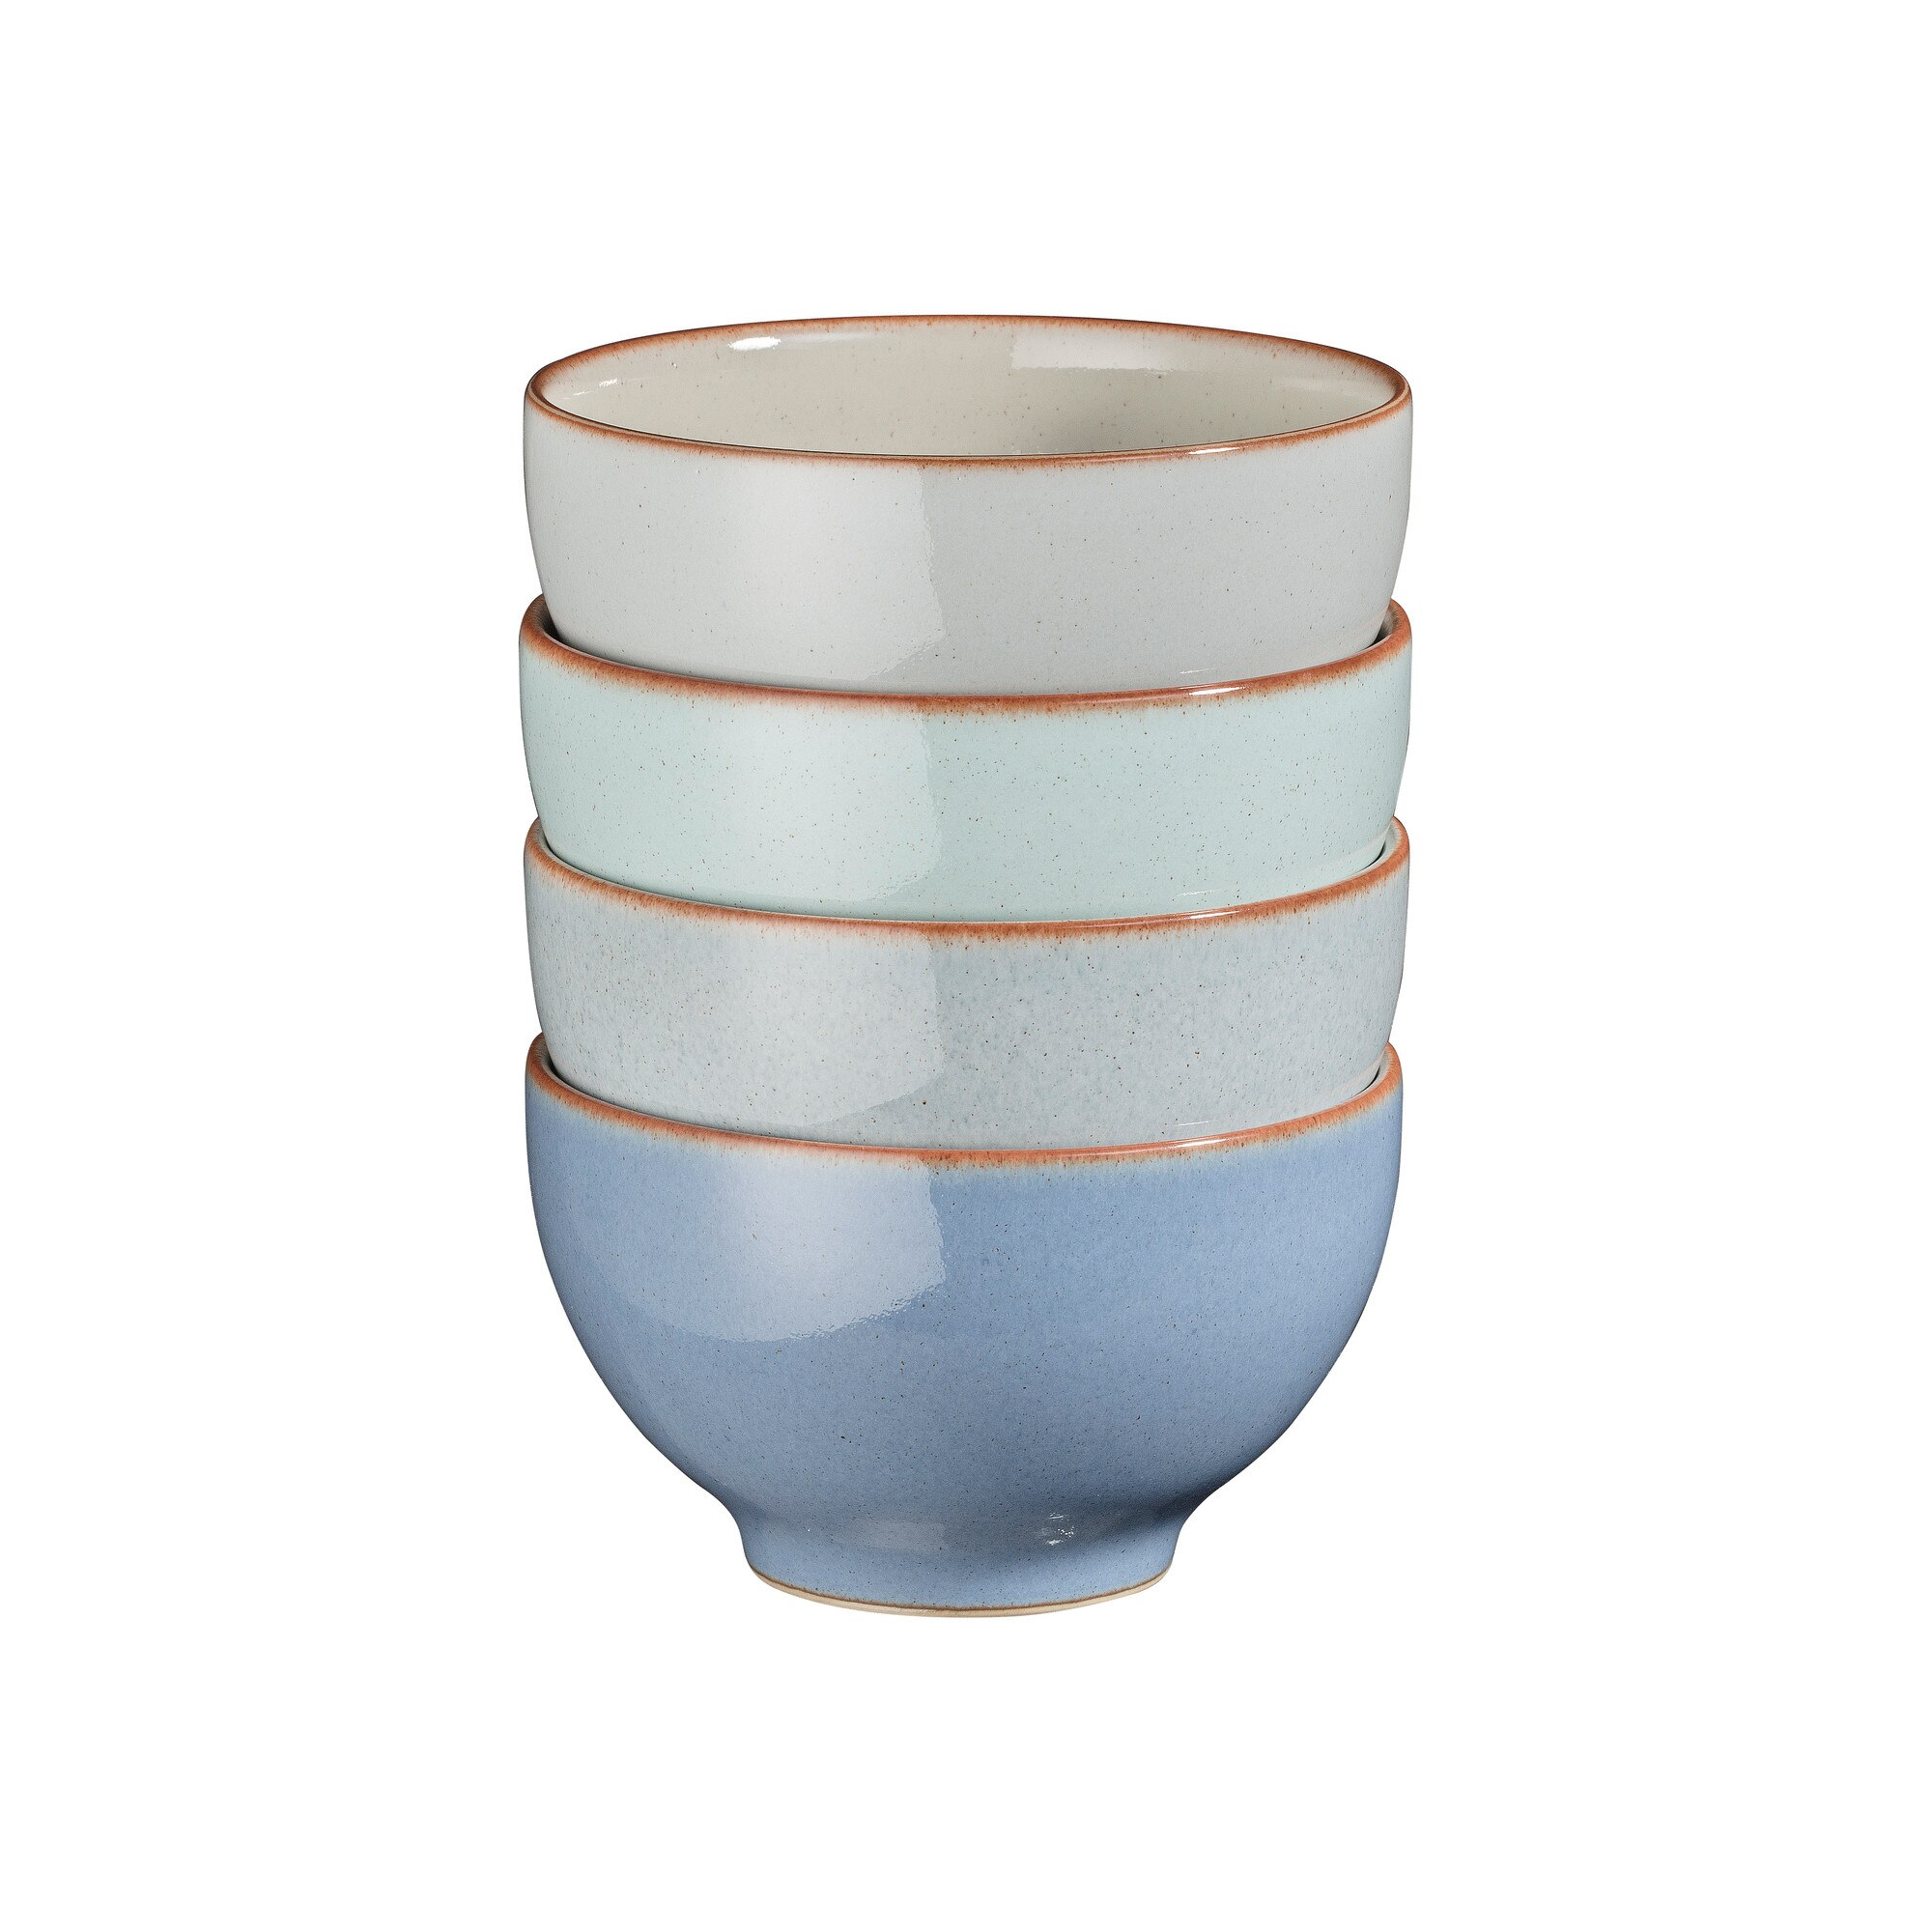 Always Entertaining - The Blue Edit 4 Piece Small Bowl Set